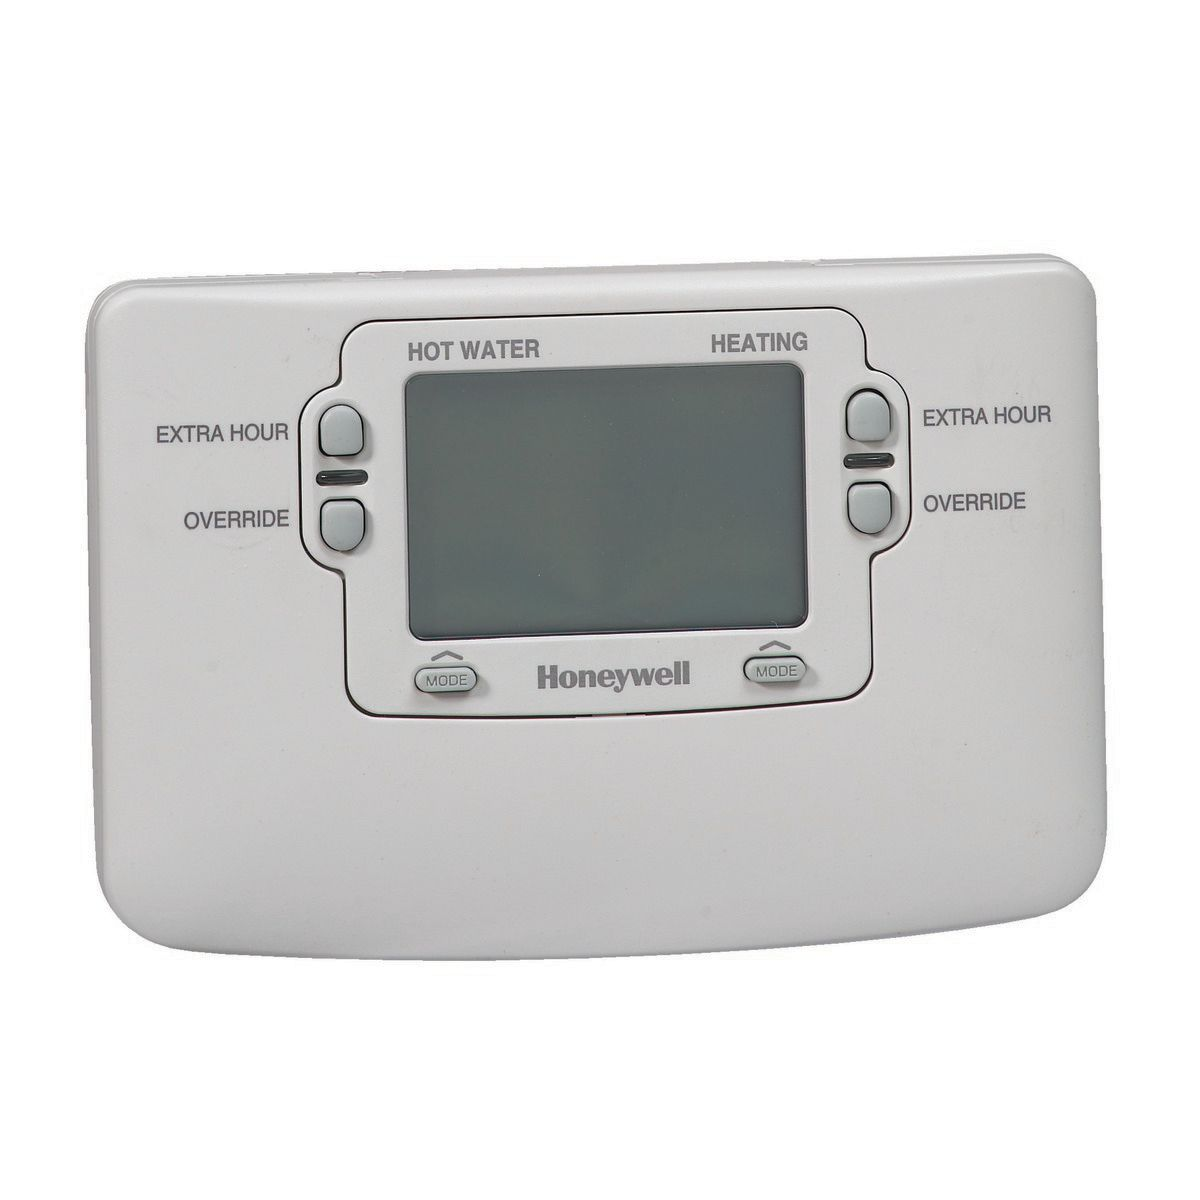 Honeywell St9400a Programmer Manual Basic Instruction I Need A Color Coded Wiring Diagram For My Chronotherm Iv Plus 1 Day 2 Channel Travis Perkins Rh Travisperkins Co Uk All Thermostats Pro 8000 Thermostat